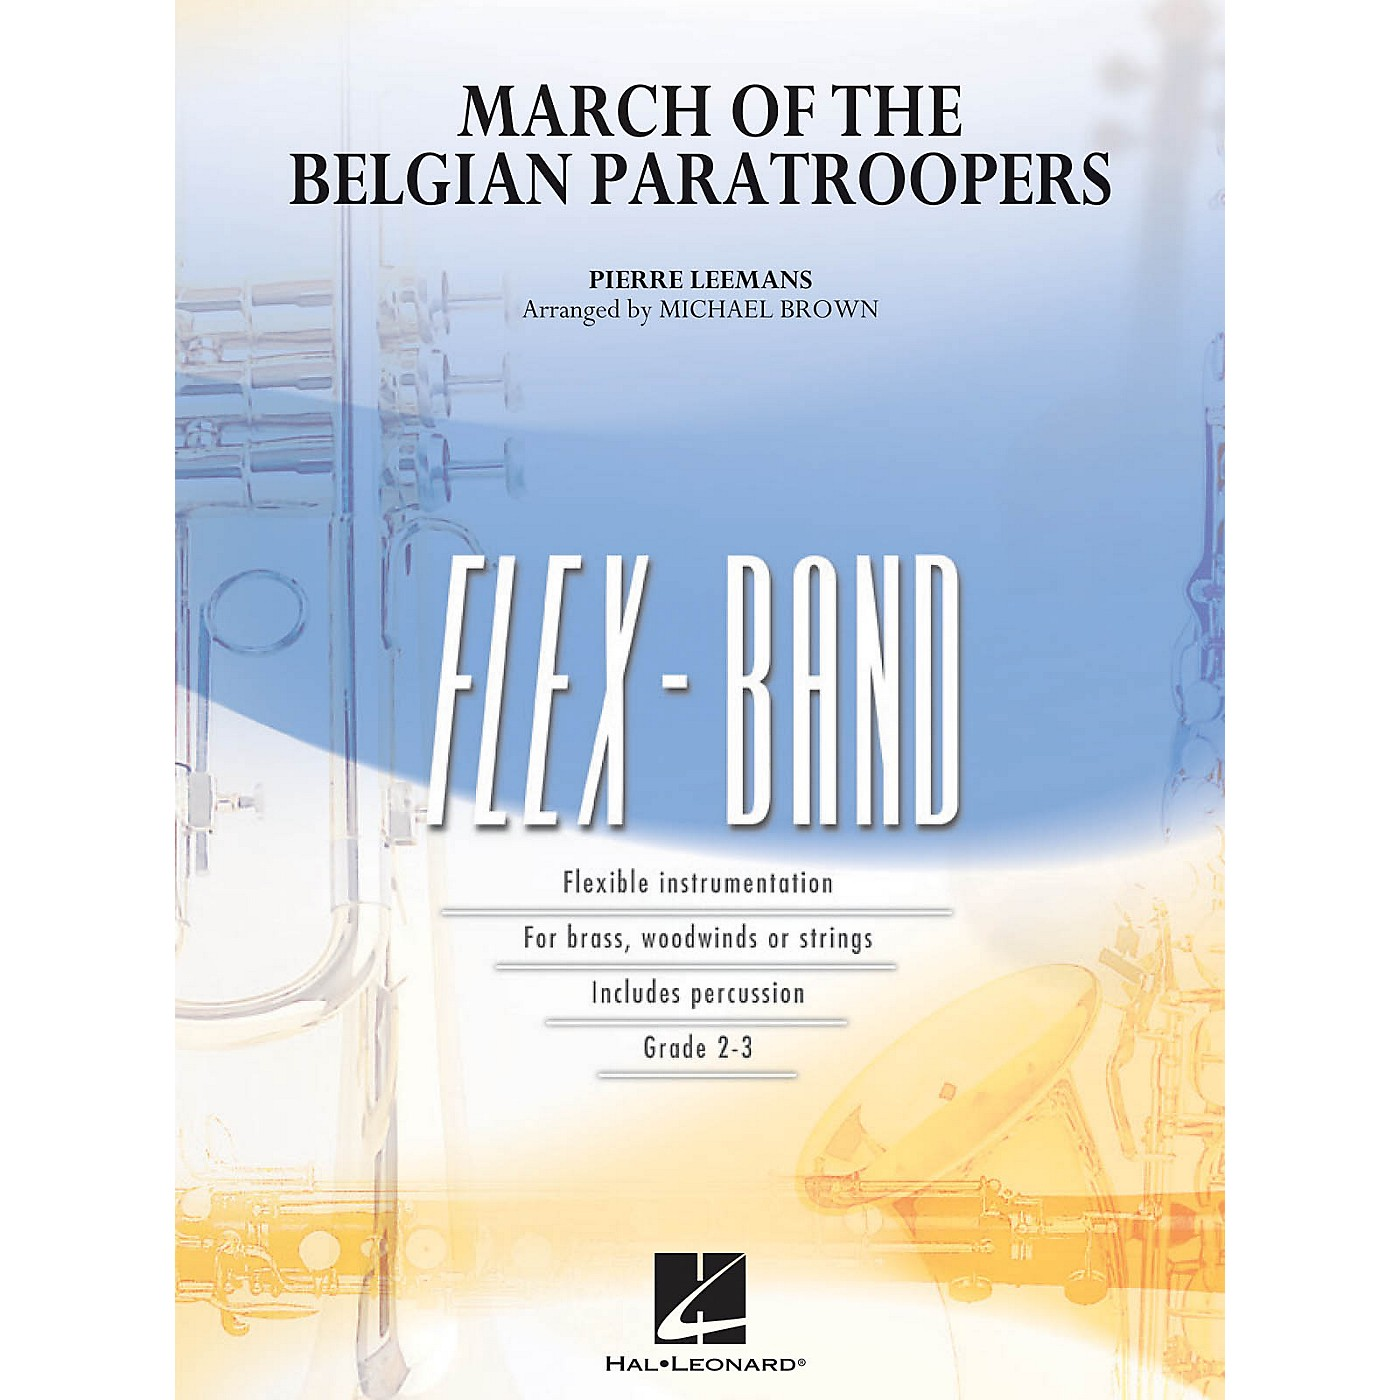 Hal Leonard March of the Belgian Paratroopers Concert Band Level 2-3 Arranged by Michael Brown thumbnail